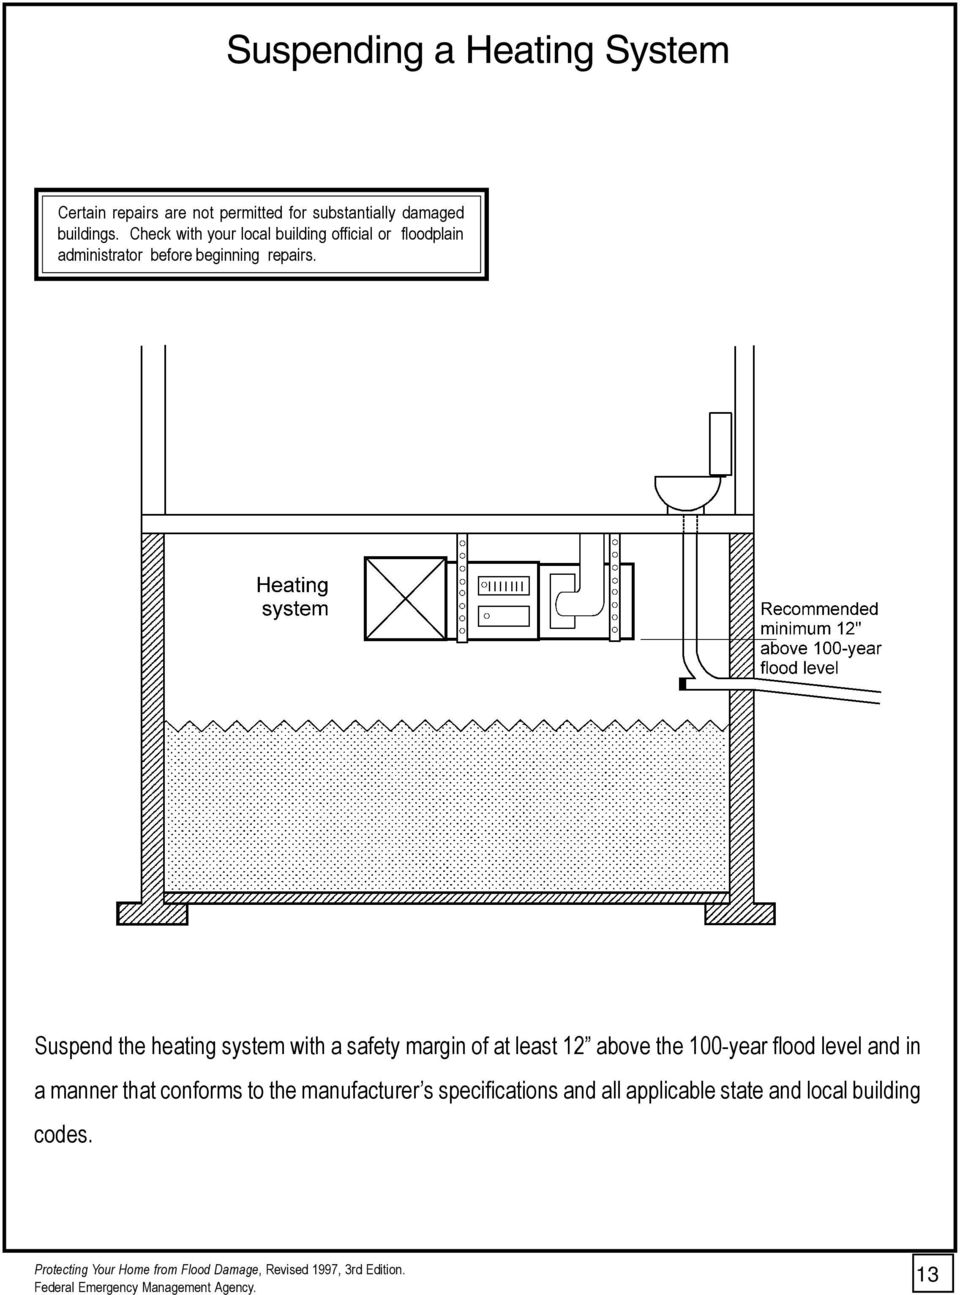 Suspend the heating system with a safety margin of at least 12 above the 100-year flood level and in